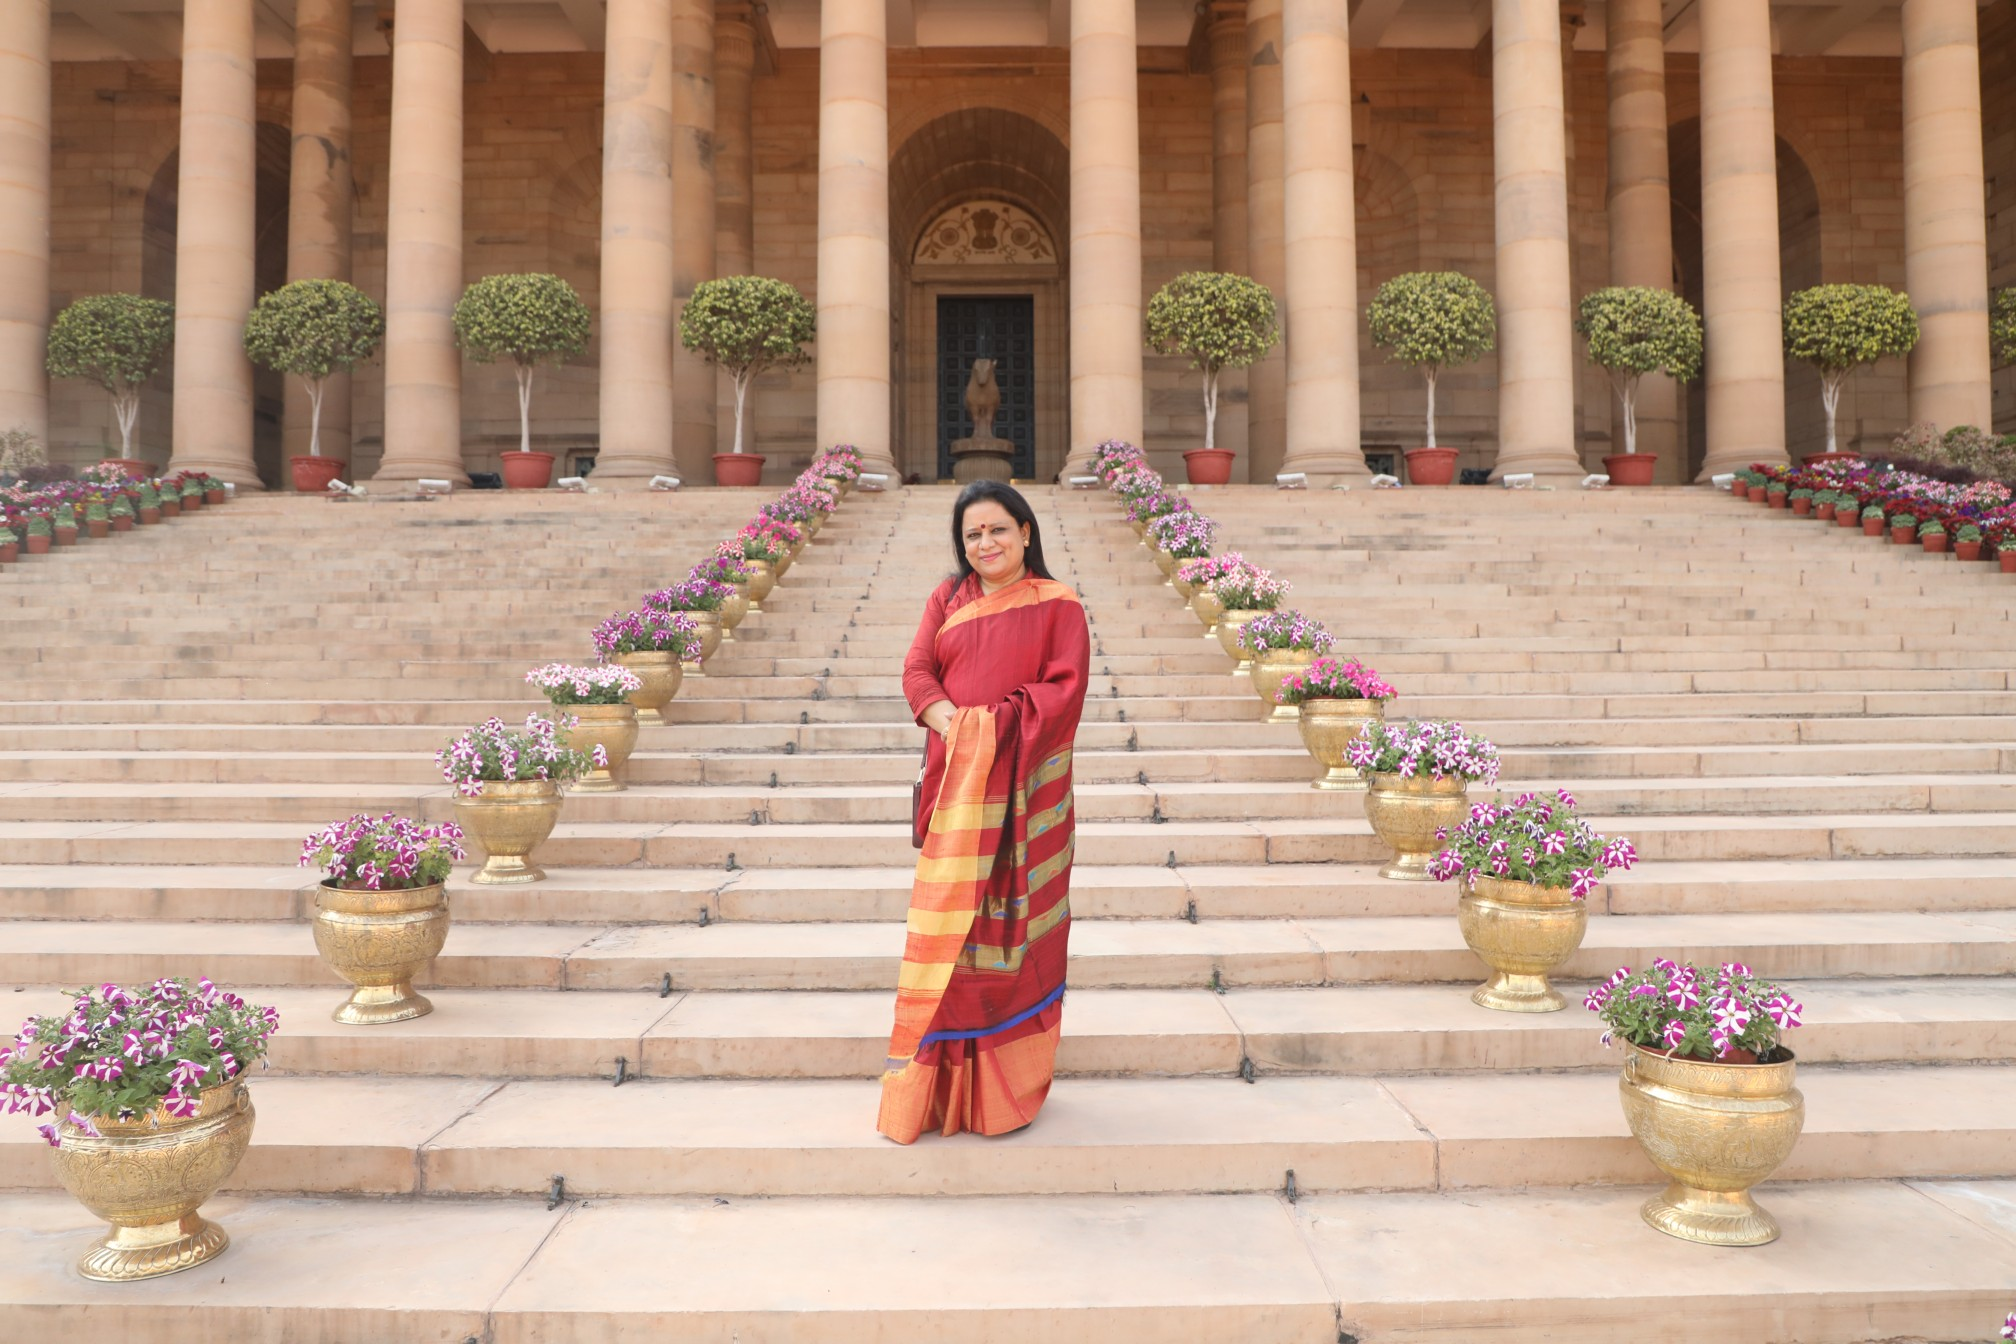 Abhijita Kulshrestha was invited to the Rashtrapati Bhawan-The President House in India on occasion of honouring exceptional women in India on the International Women's day 2021. Photo courtesy: Gemstoneuniverse